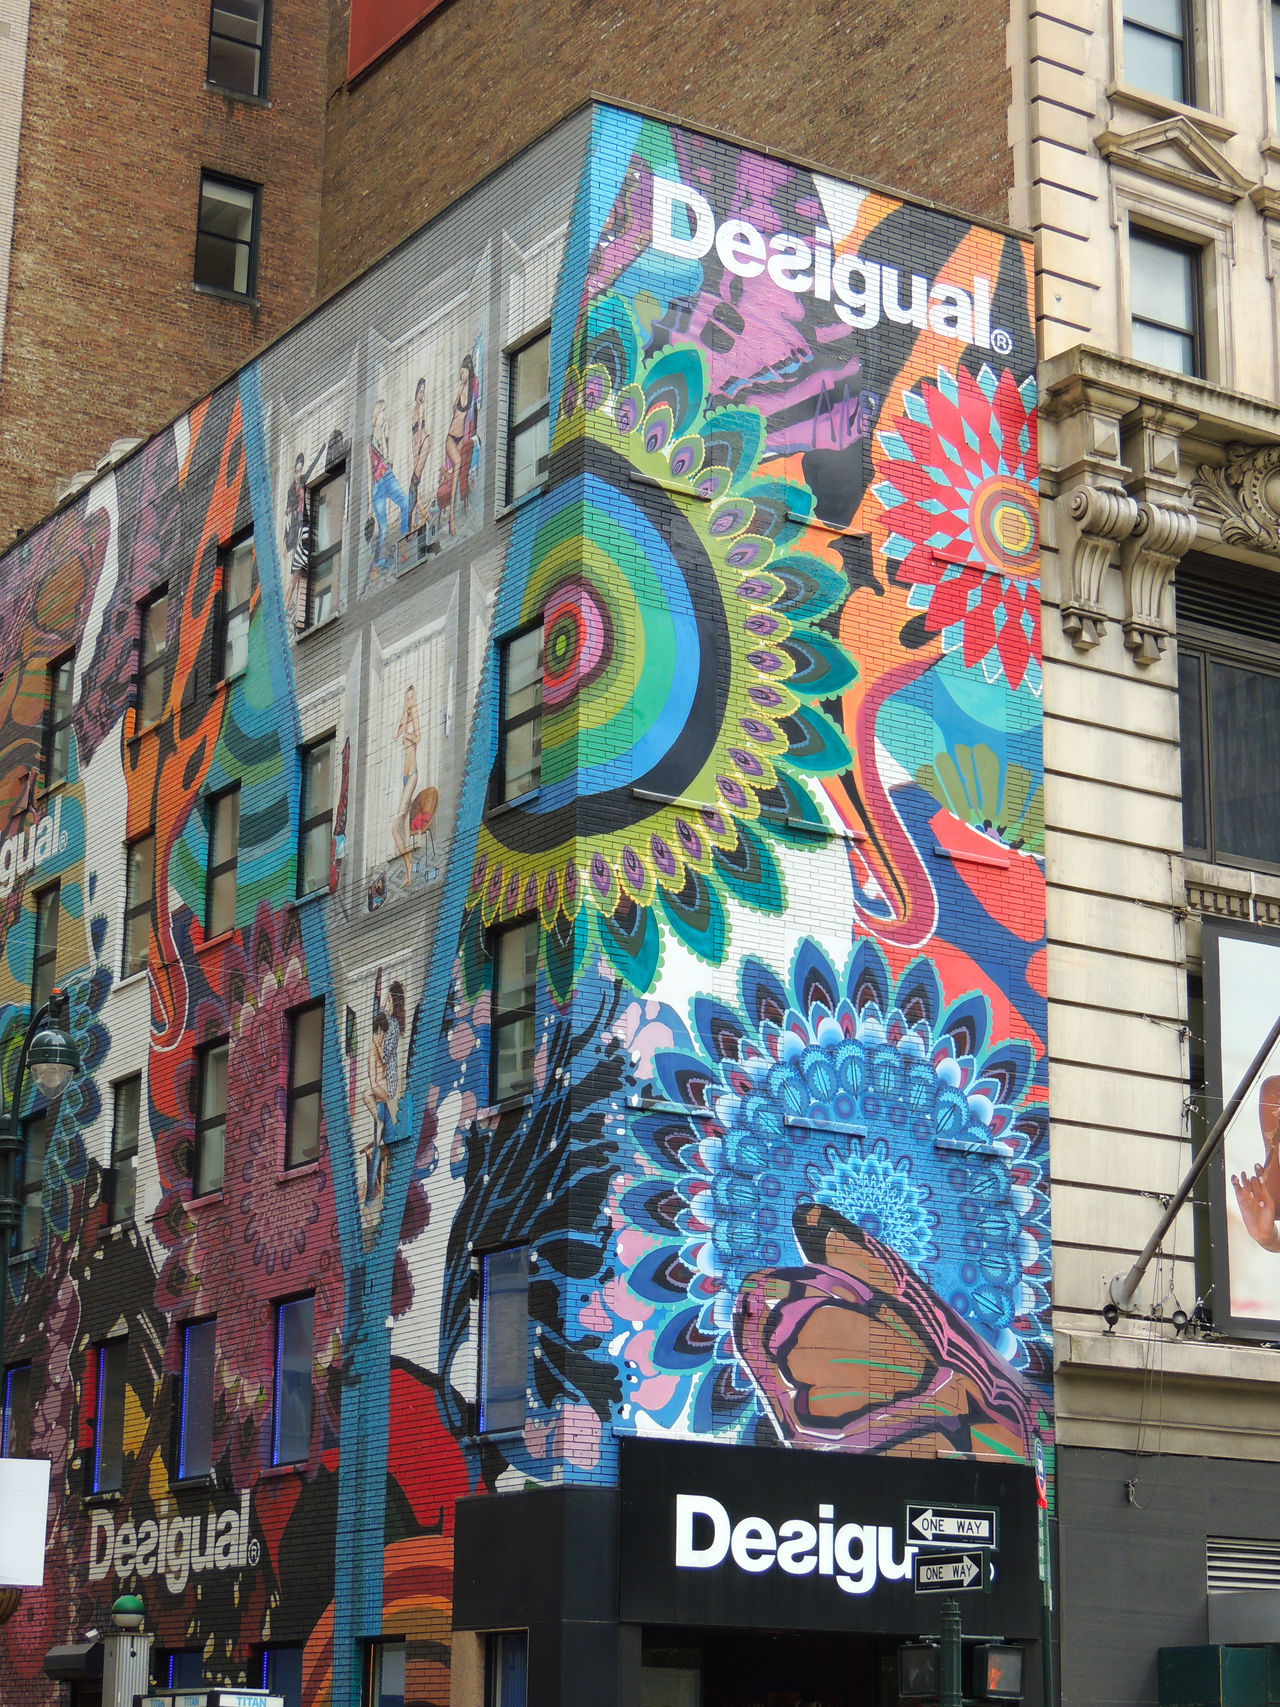 Architecture Art And Craft Building Building Exterior Built Structure City Citylife Close-up Communication Creativity Day Graffiti New York City Outdoors Outside People Relaxing In Park Peoplr Street Art Subway Station